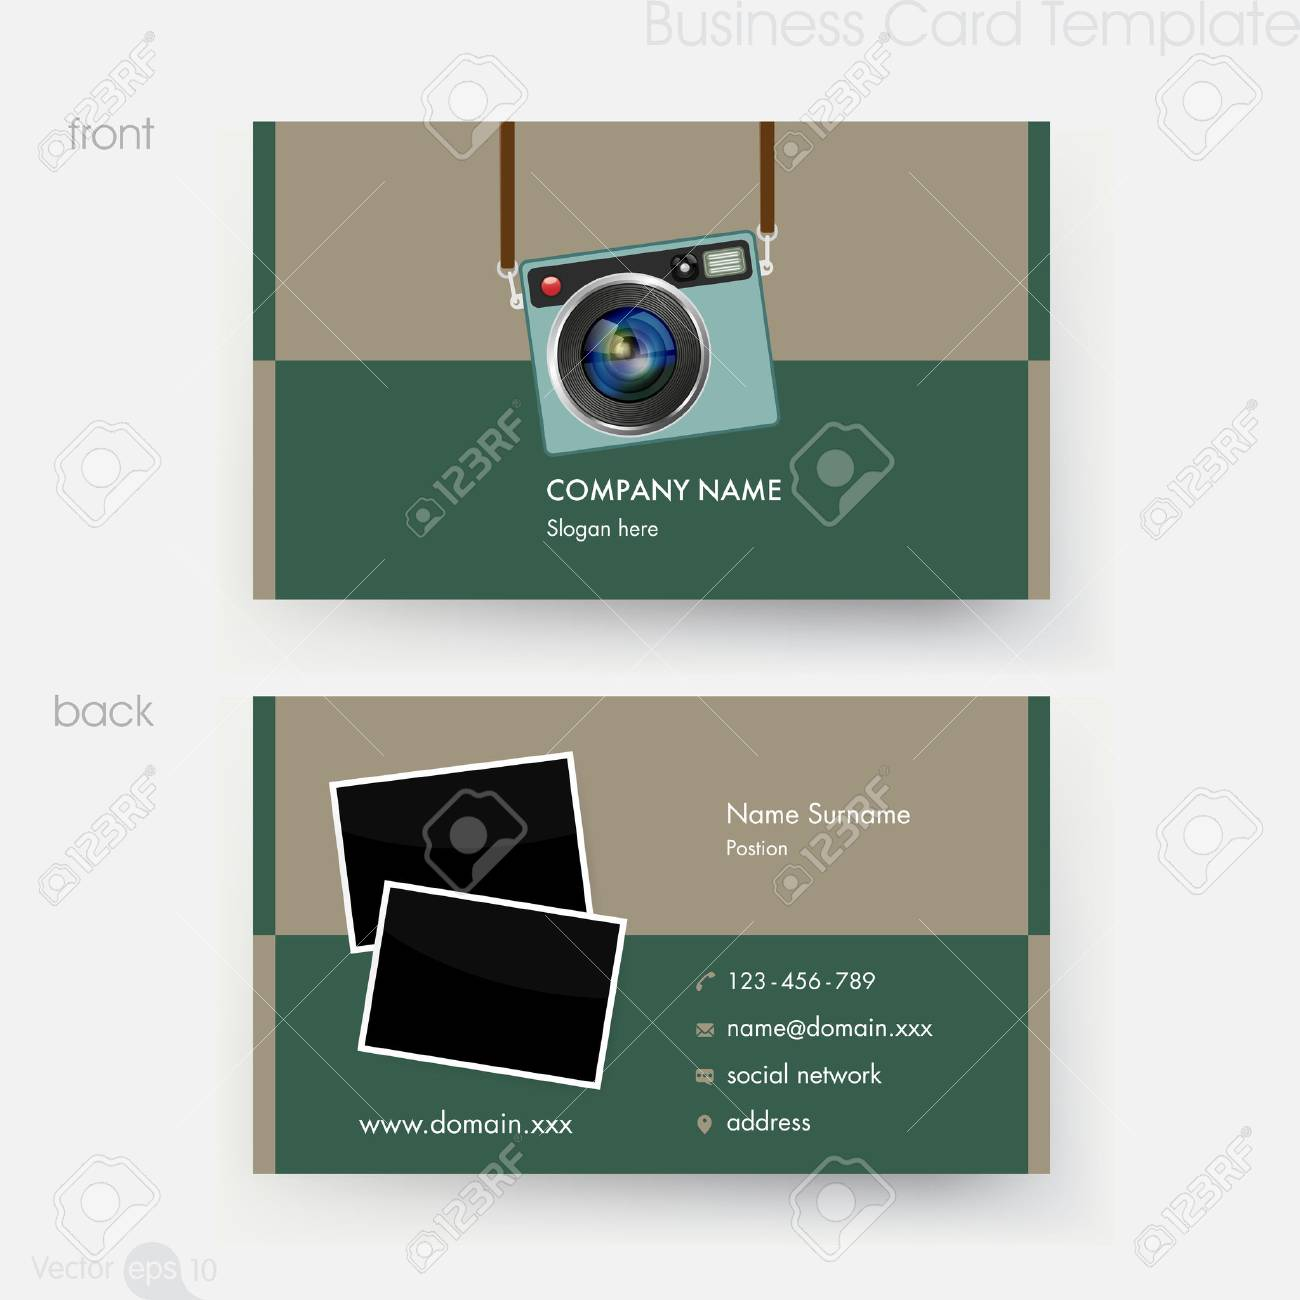 Photographer business card template royalty free cliparts vectors photographer business card template stock vector 67424823 cheaphphosting Gallery